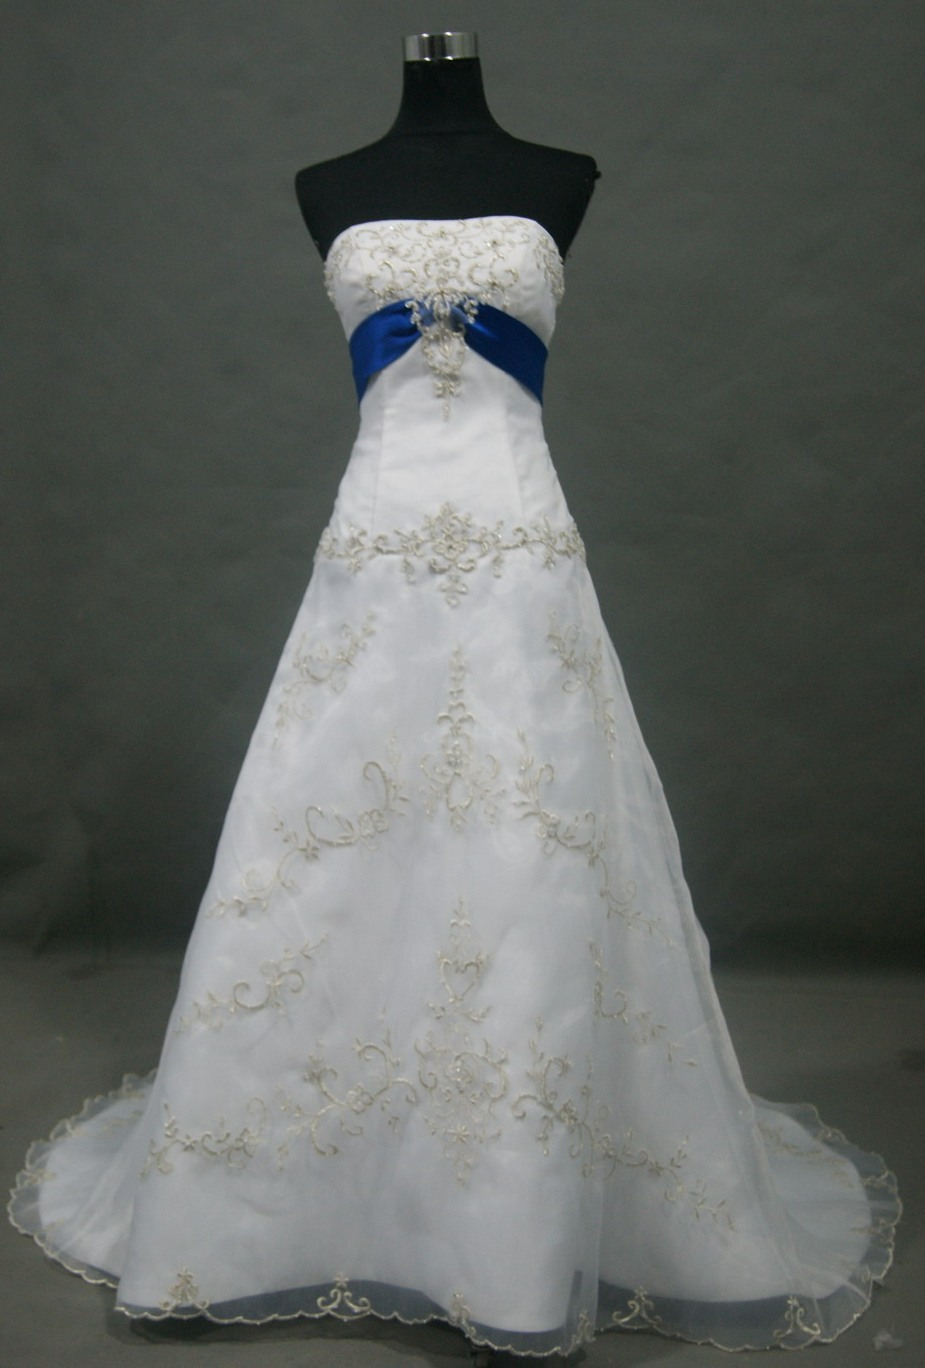 wedding dresses with royal blue accents royal blue wedding dresses Wedding Dresses With Royal Blue Accents 66